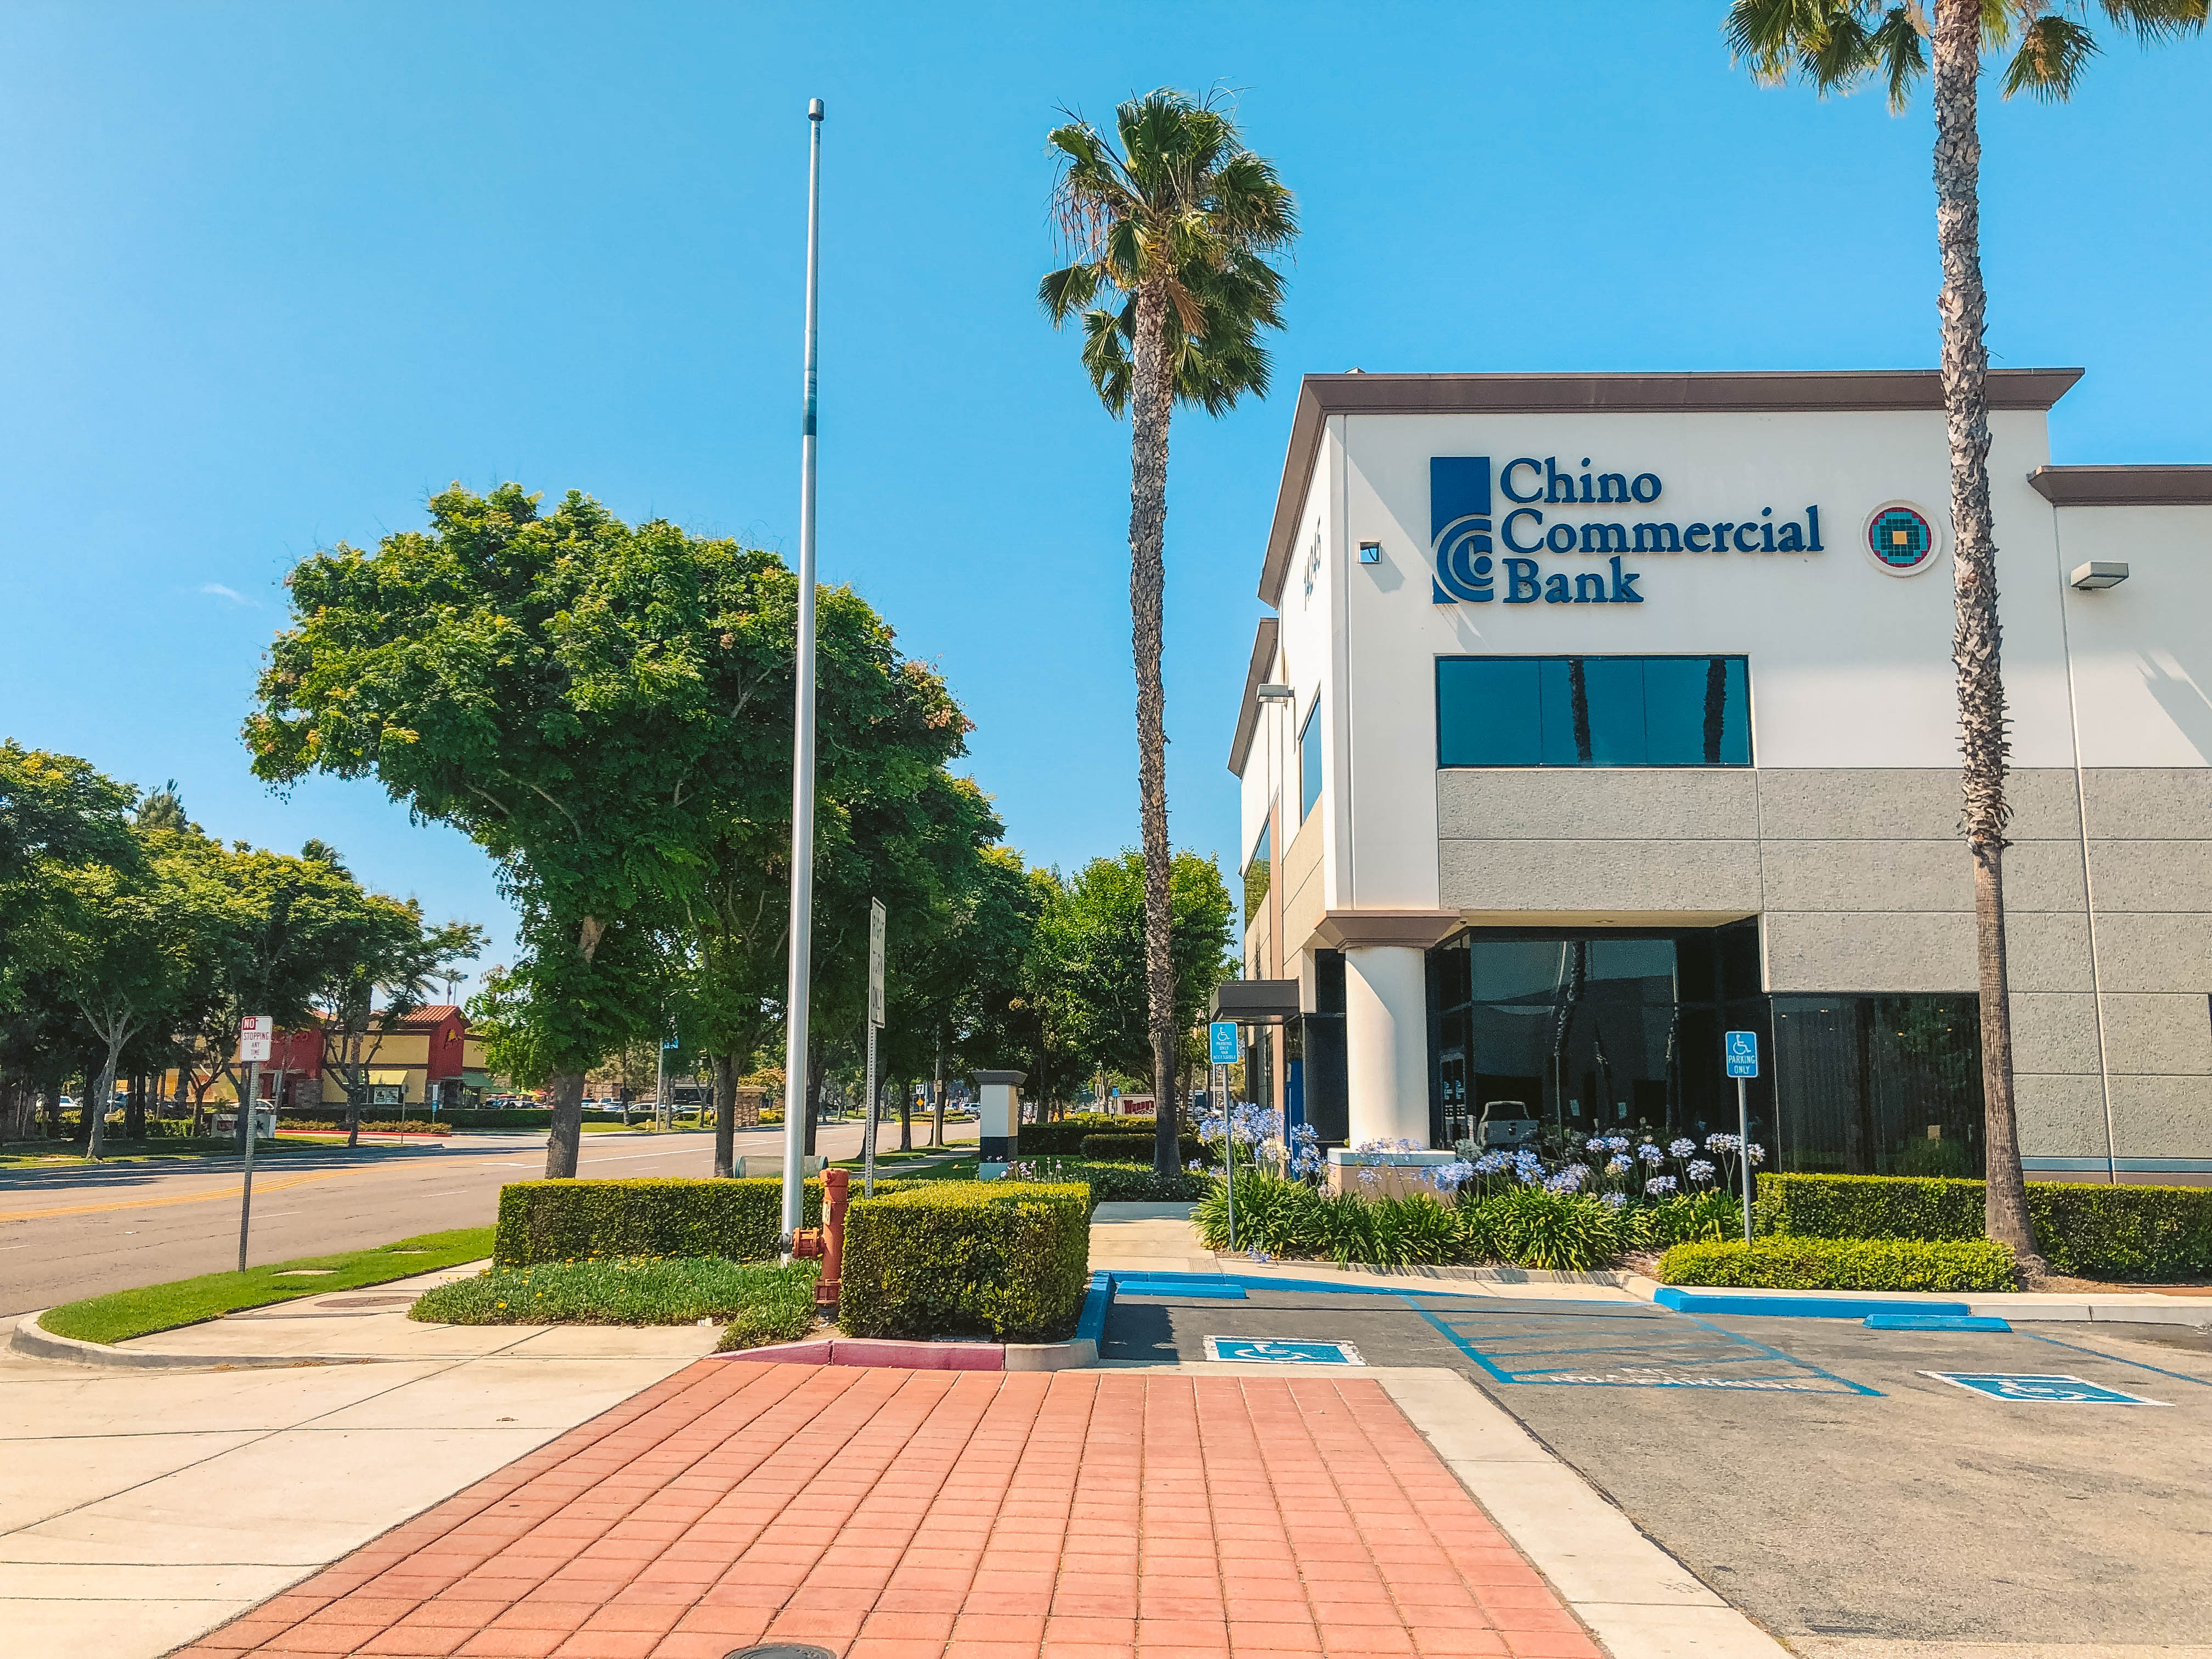 Chino Commercial Bank